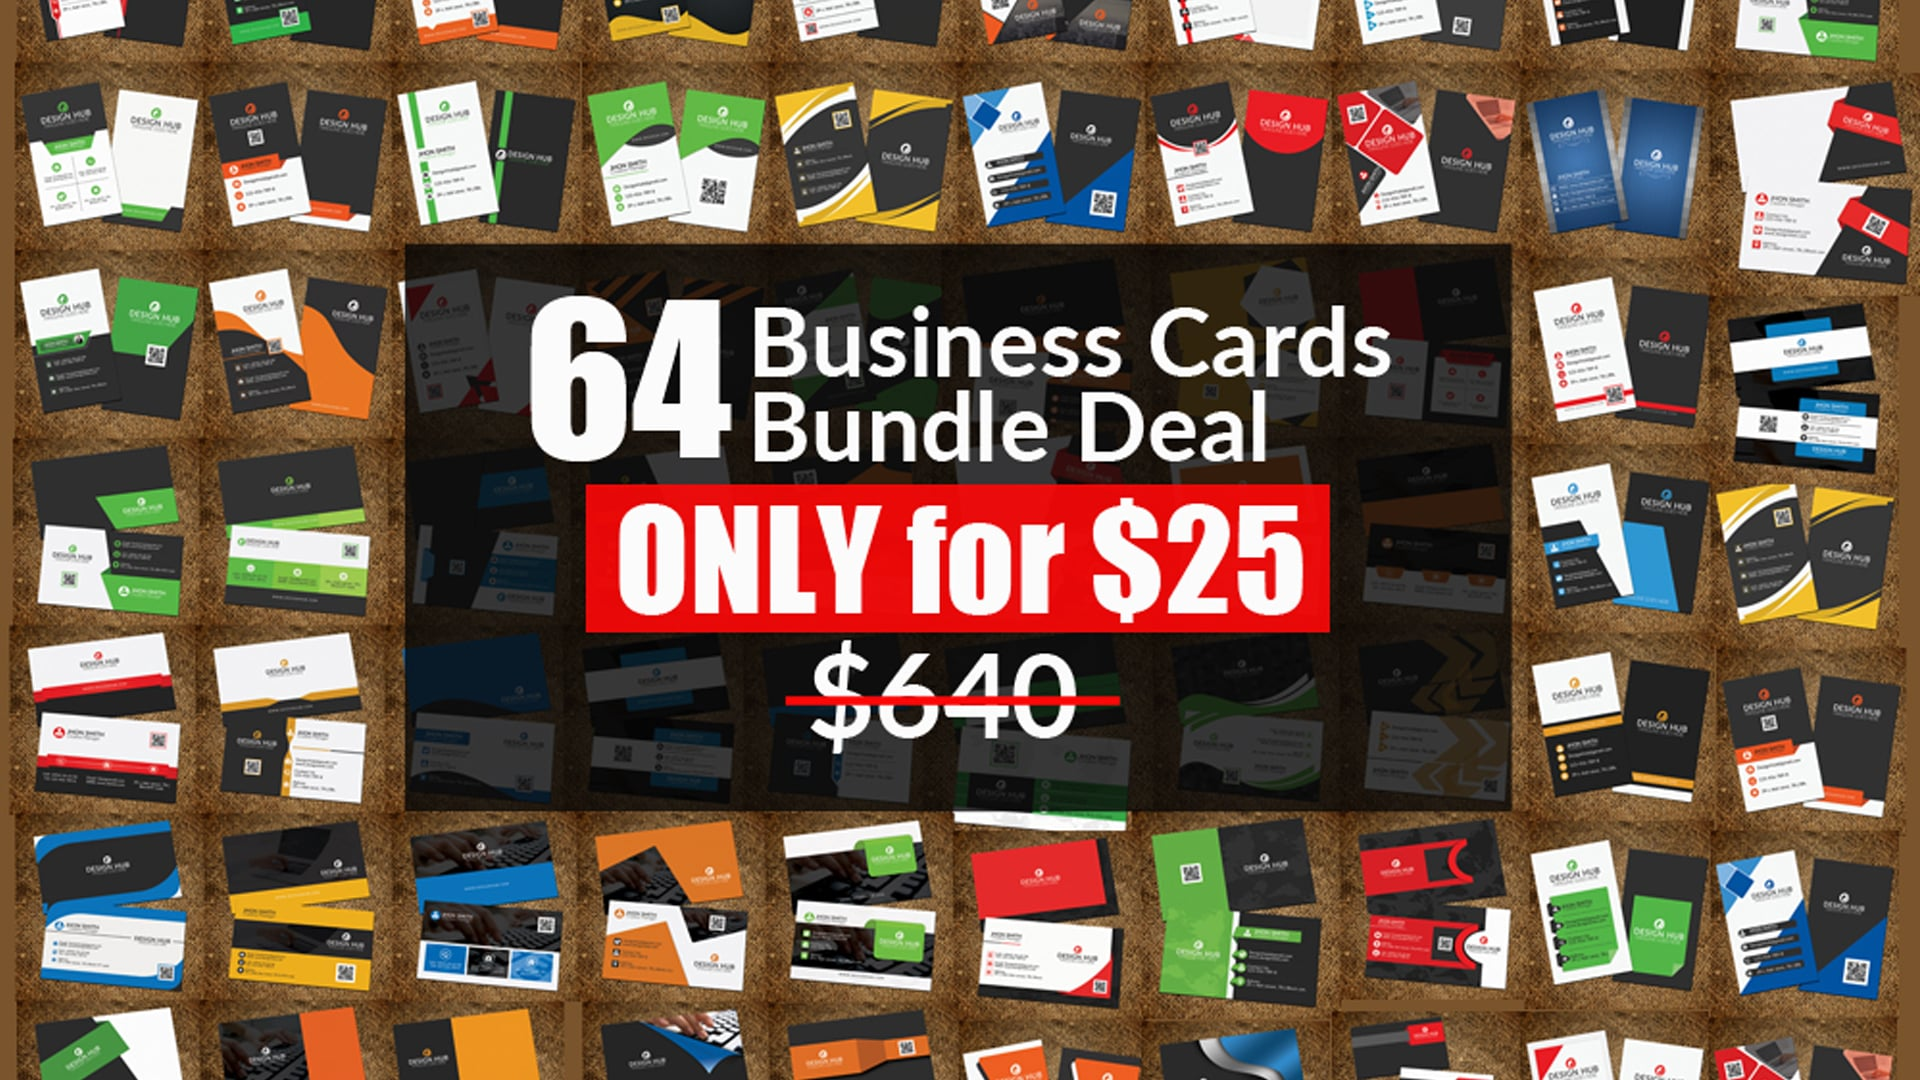 64 Business Cards That You'll Love.